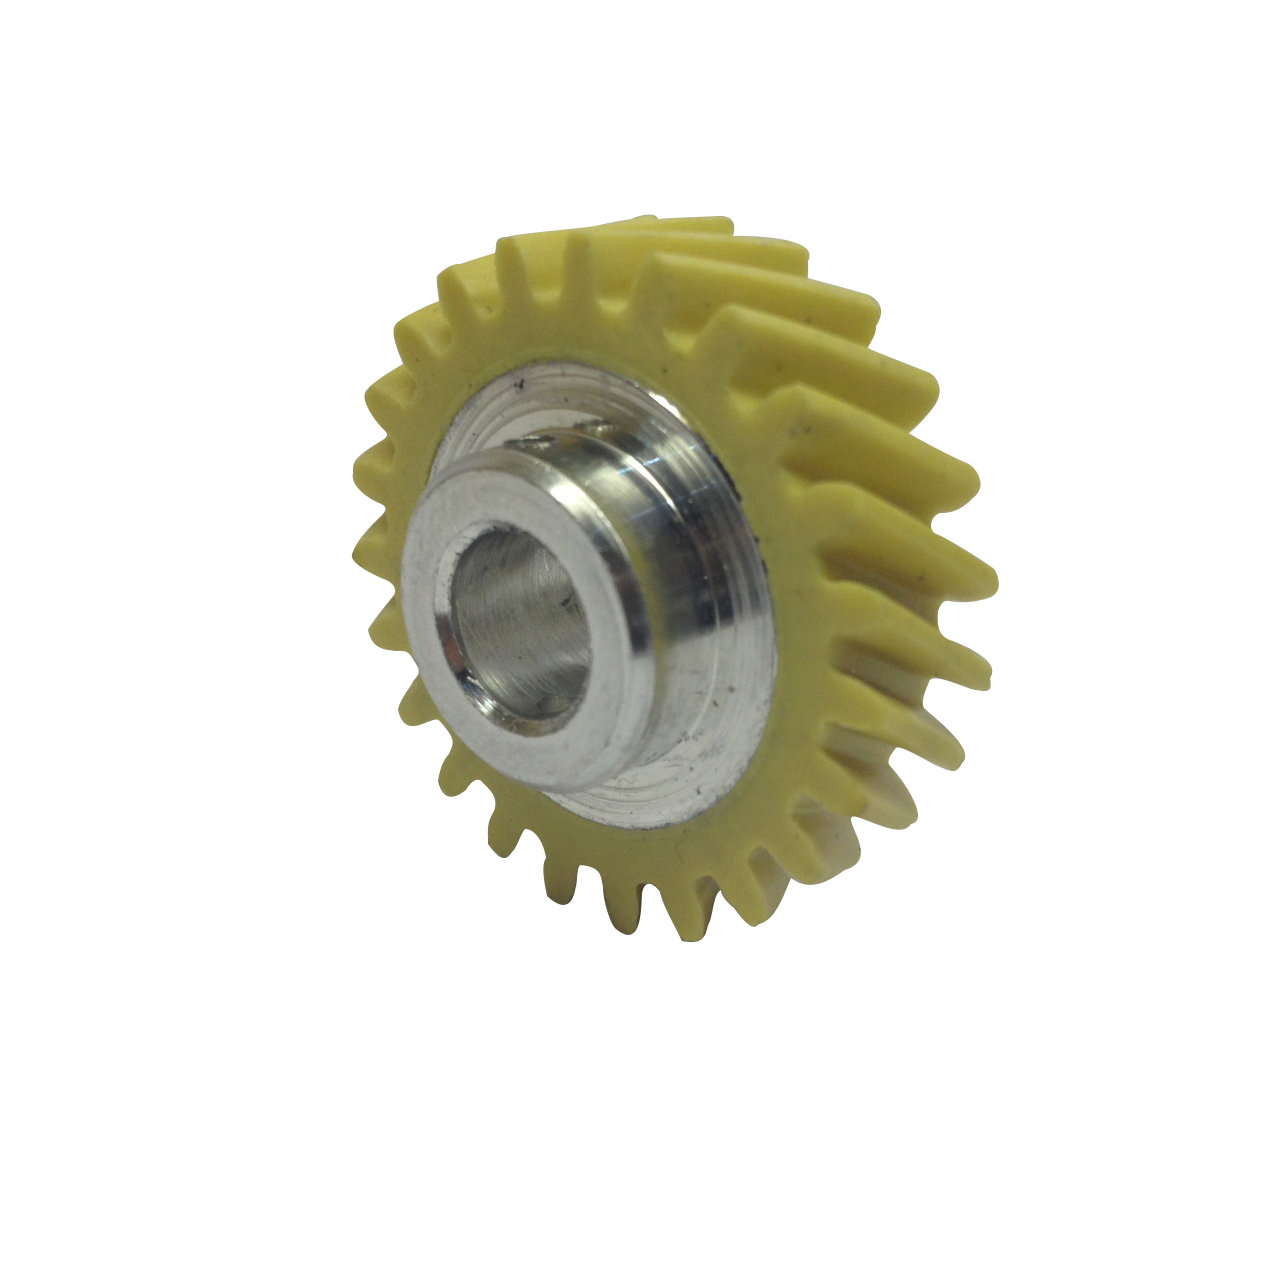 Kitchenaid Stand Mixer Worm Drive Gear W10112253 Amp A Pair